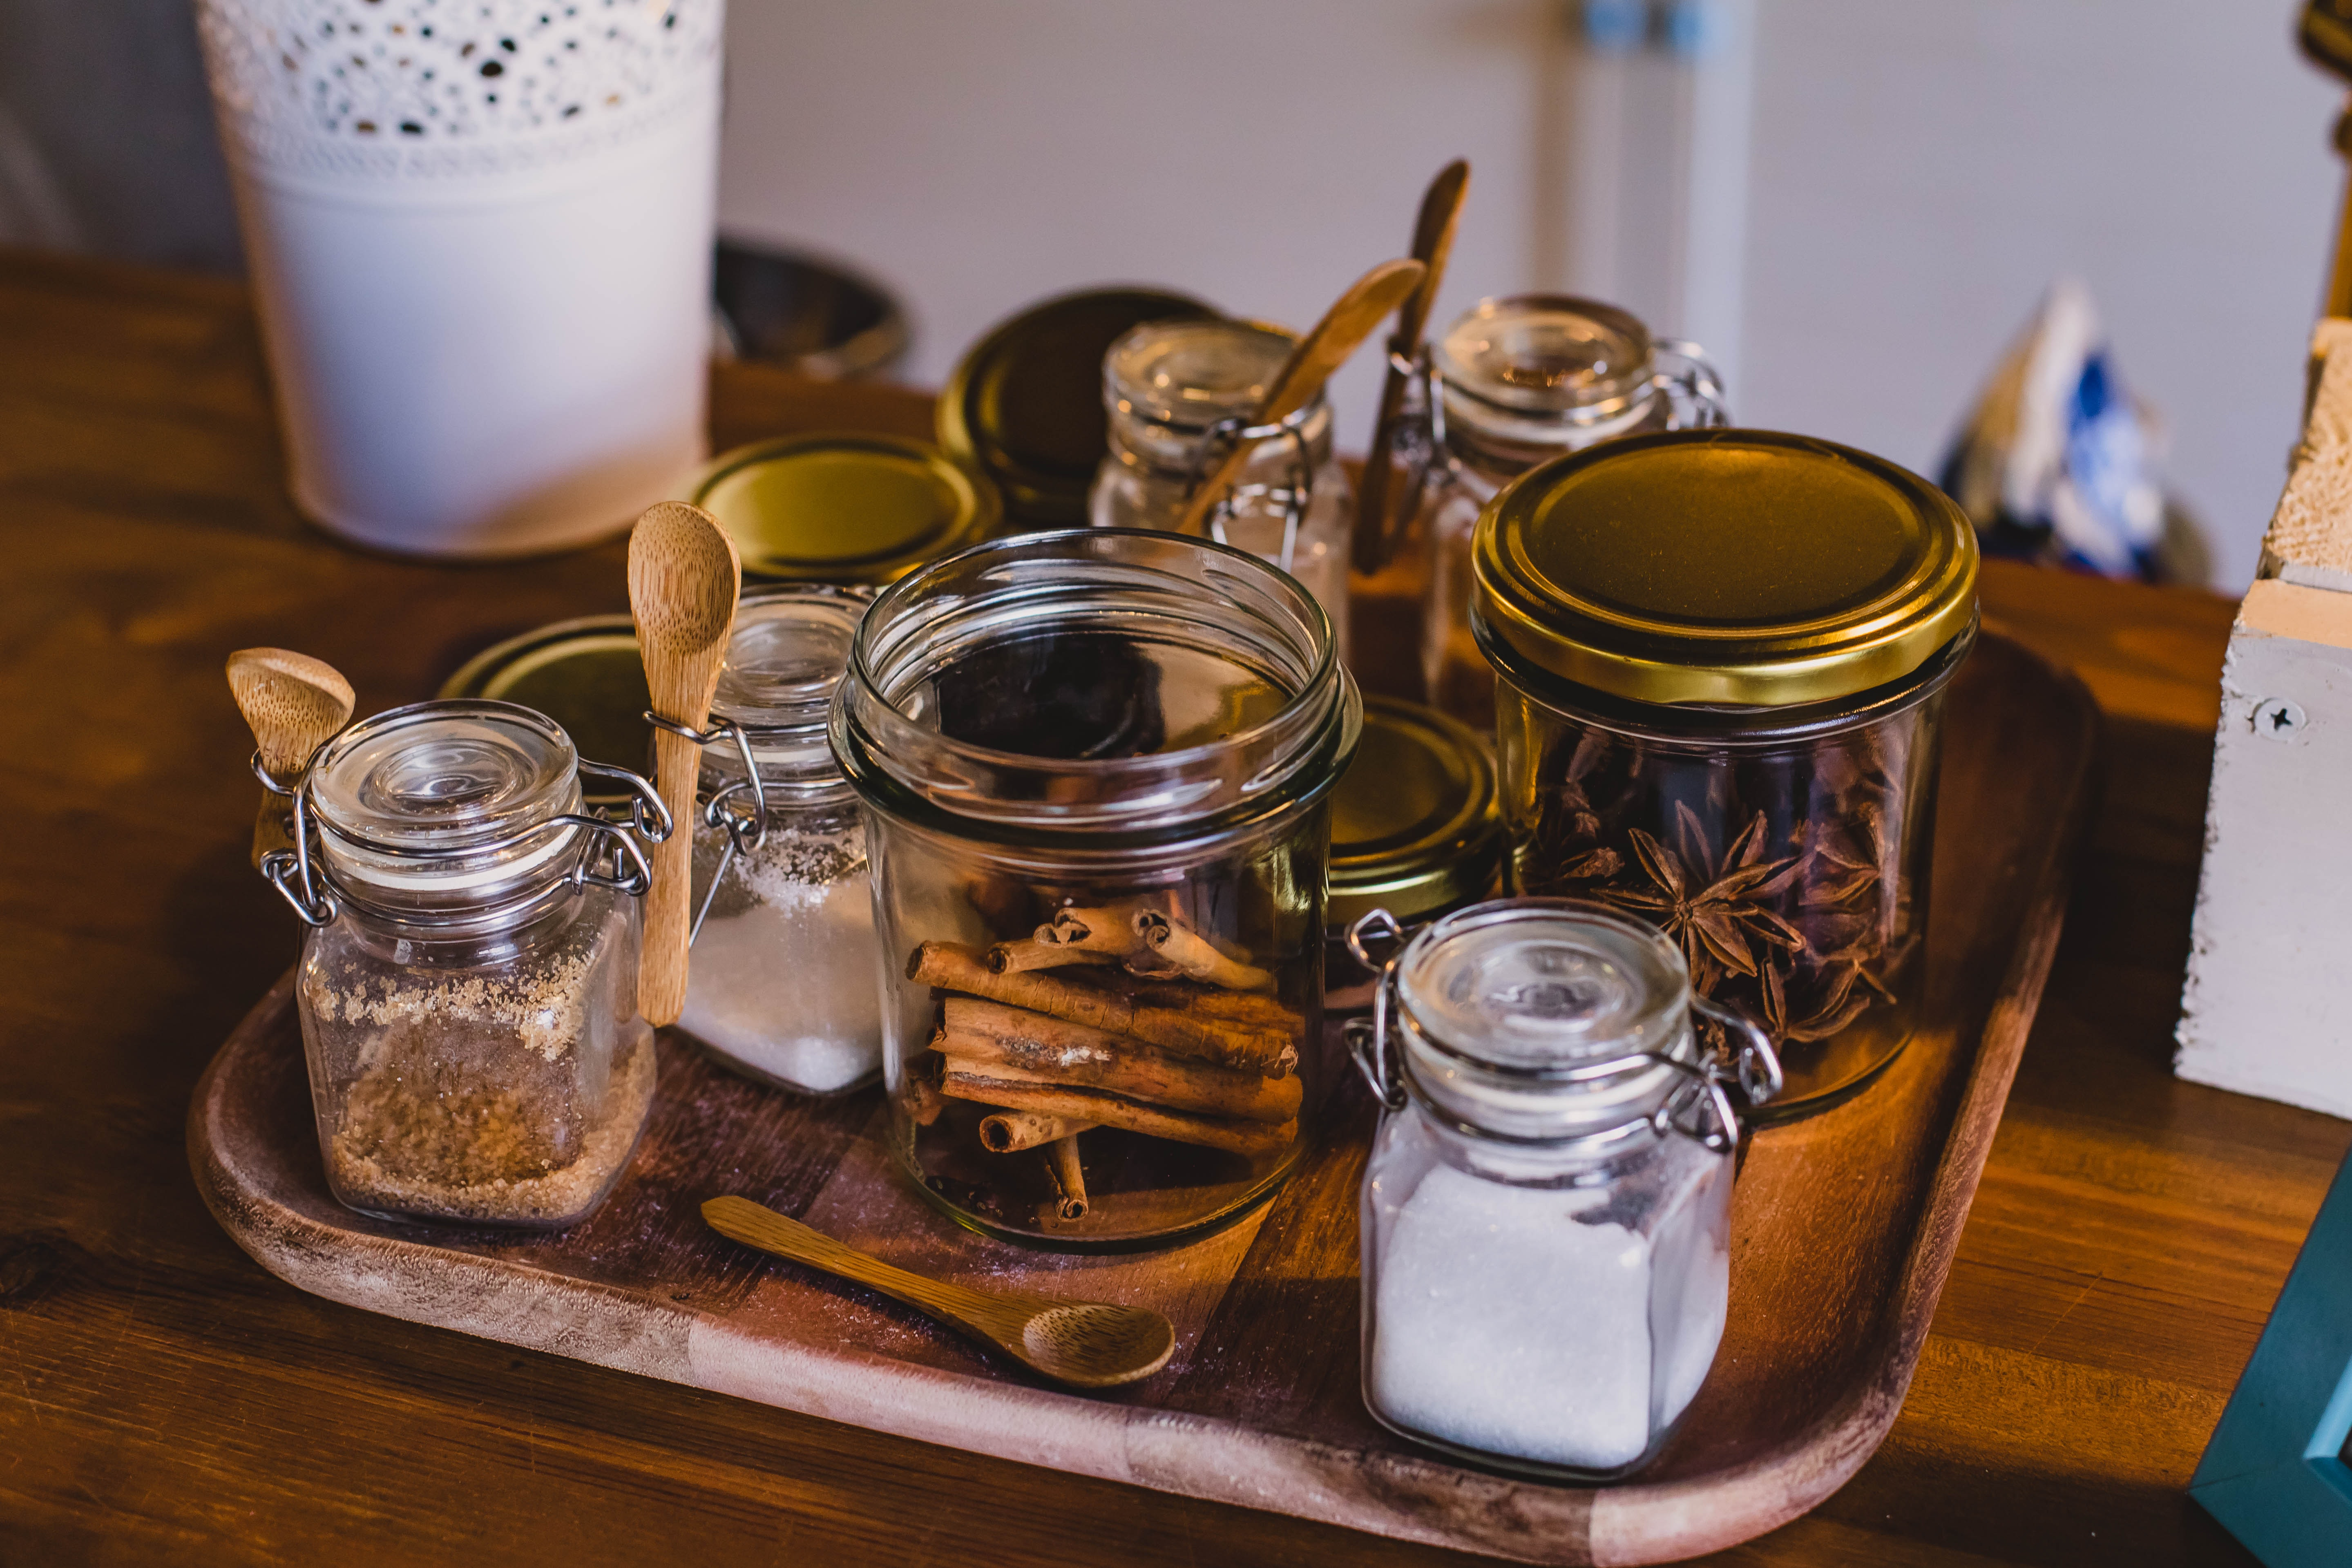 Clear glass jars on top of a tray